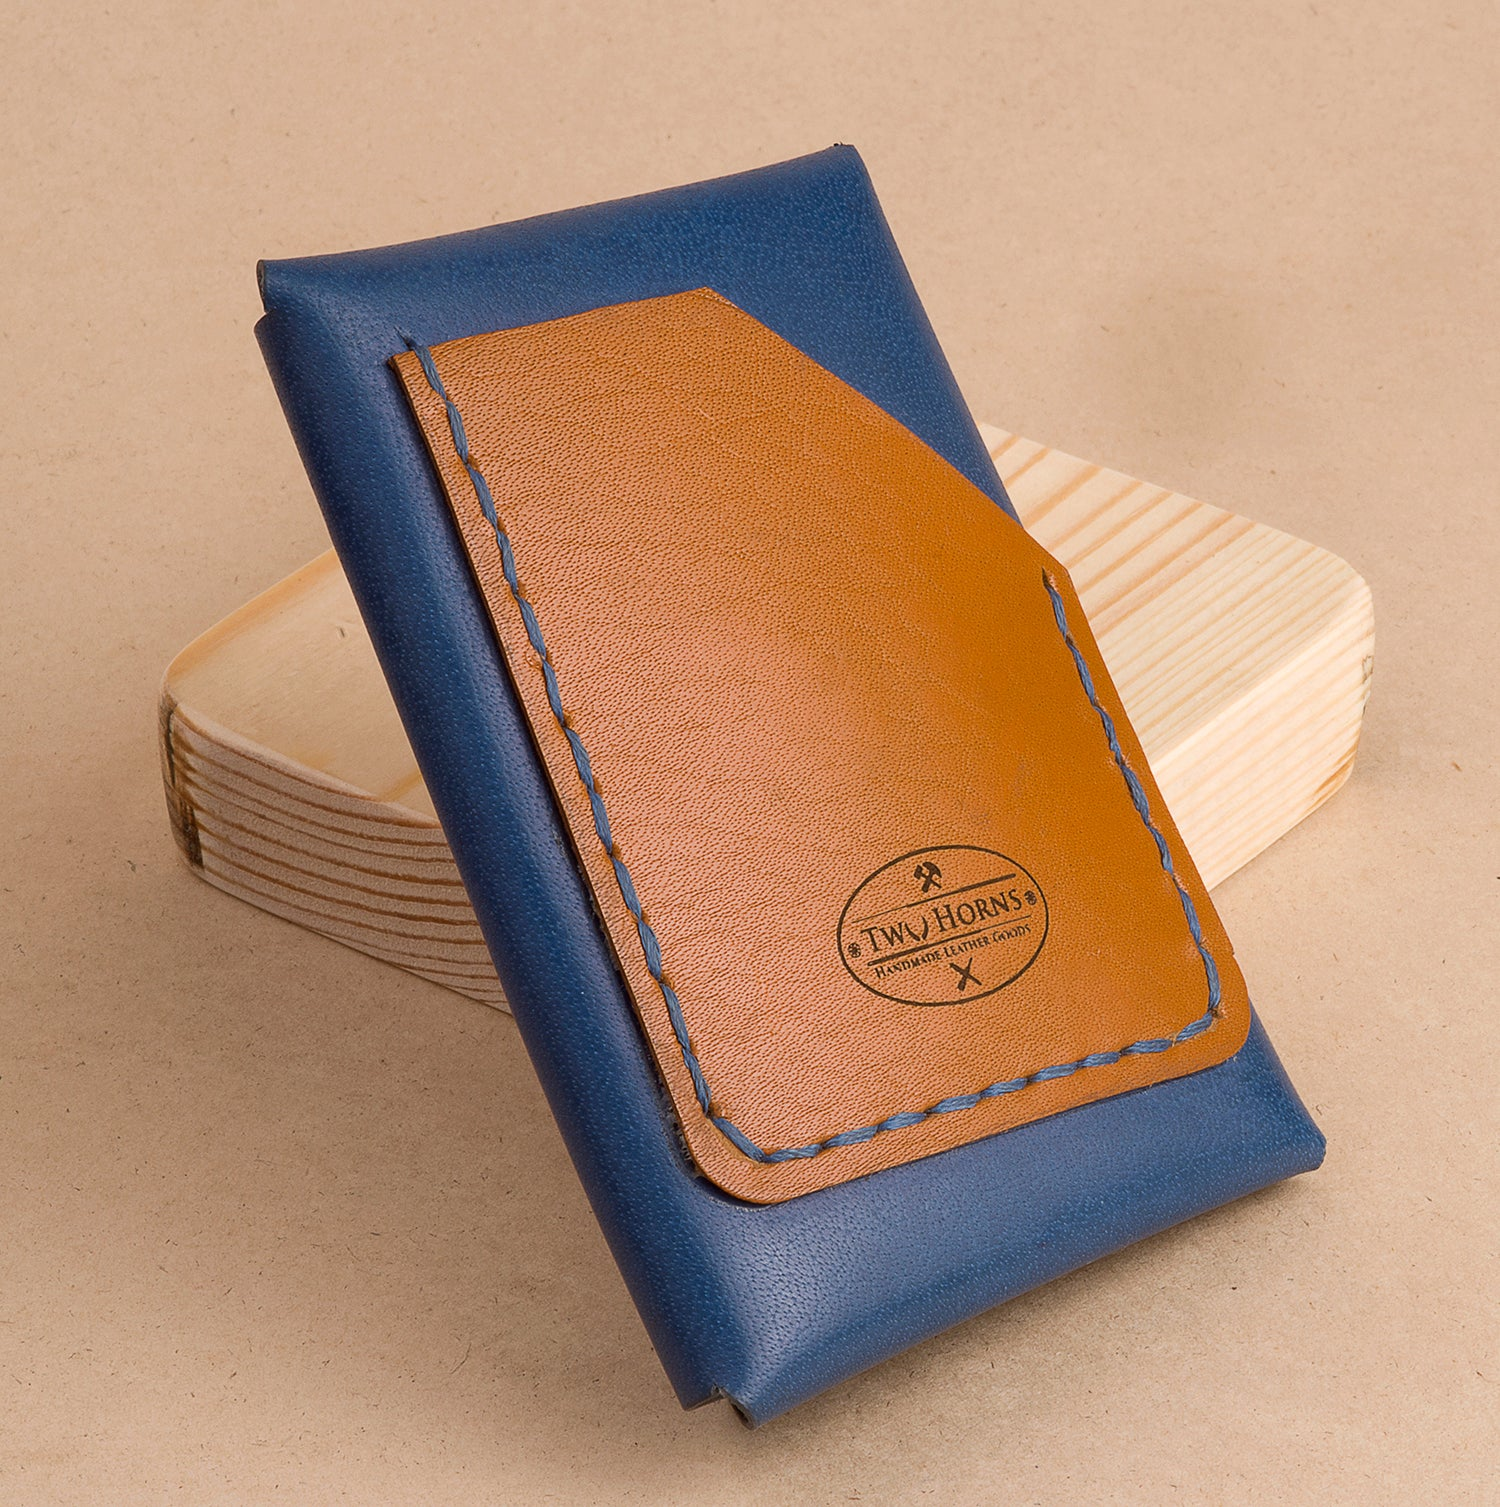 Cash & Card Wallet - Two Horns